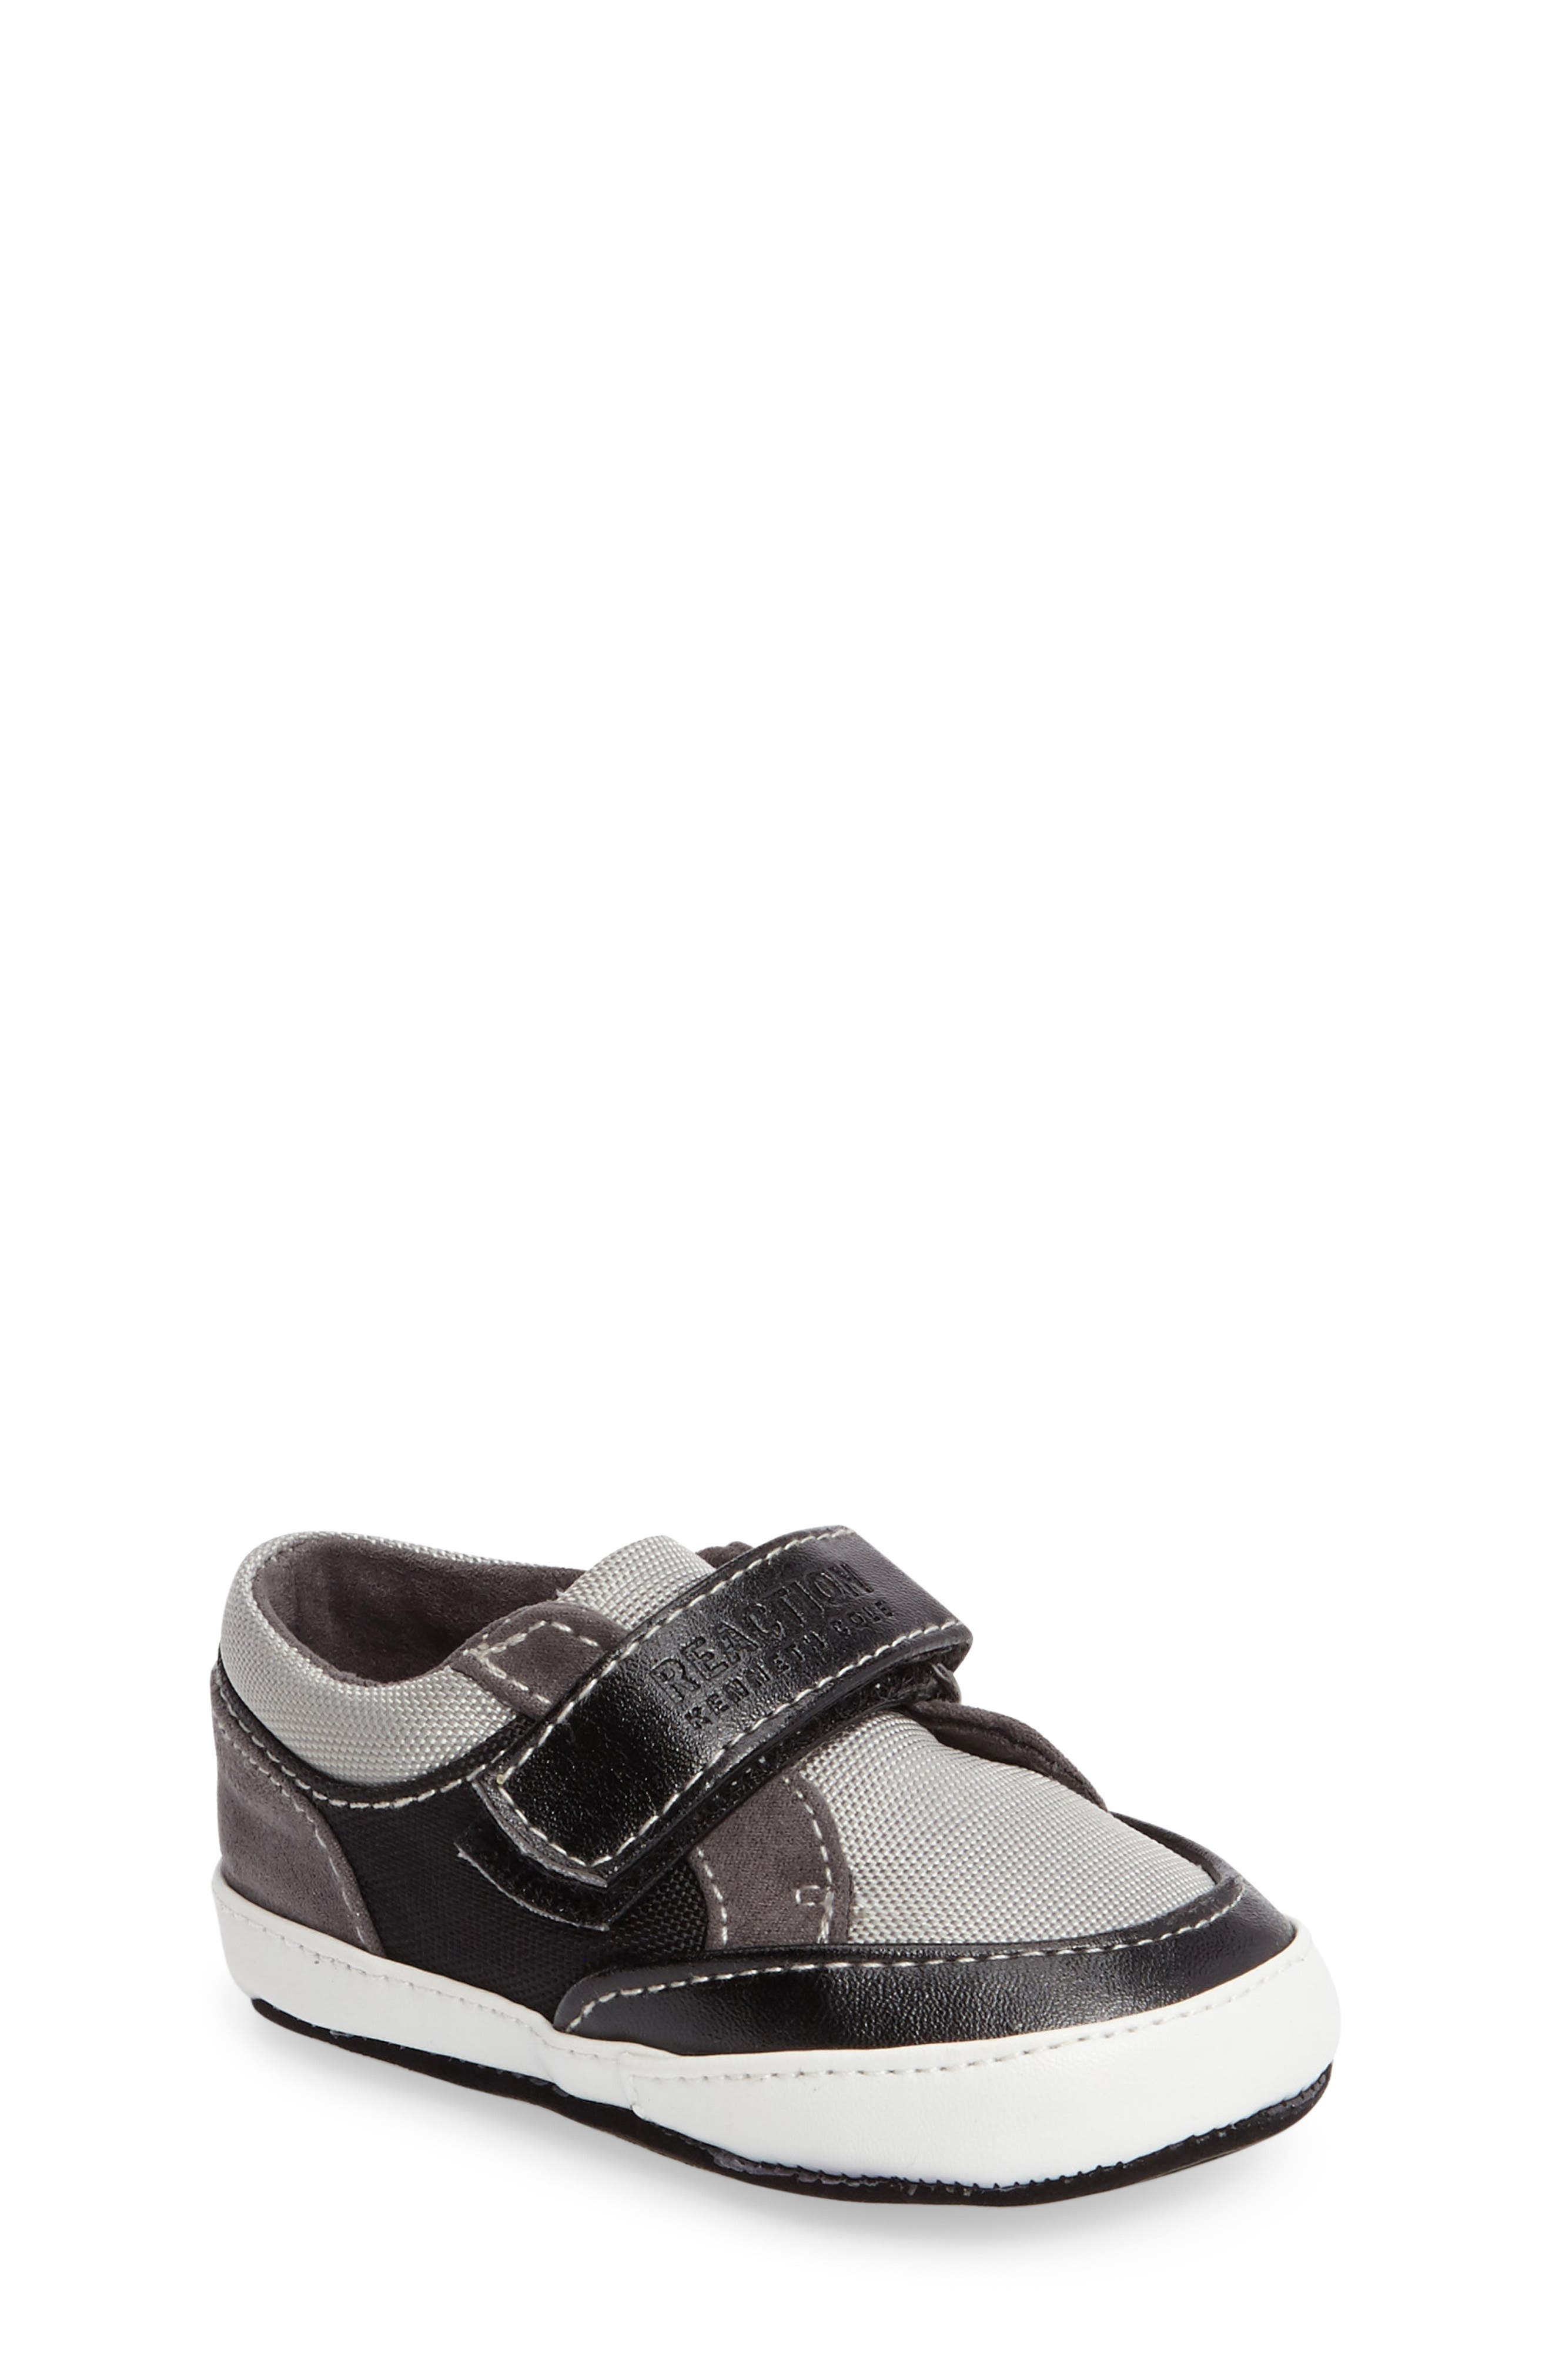 Main Image - Kenneth Cole New York Danny Sneaker (Baby)